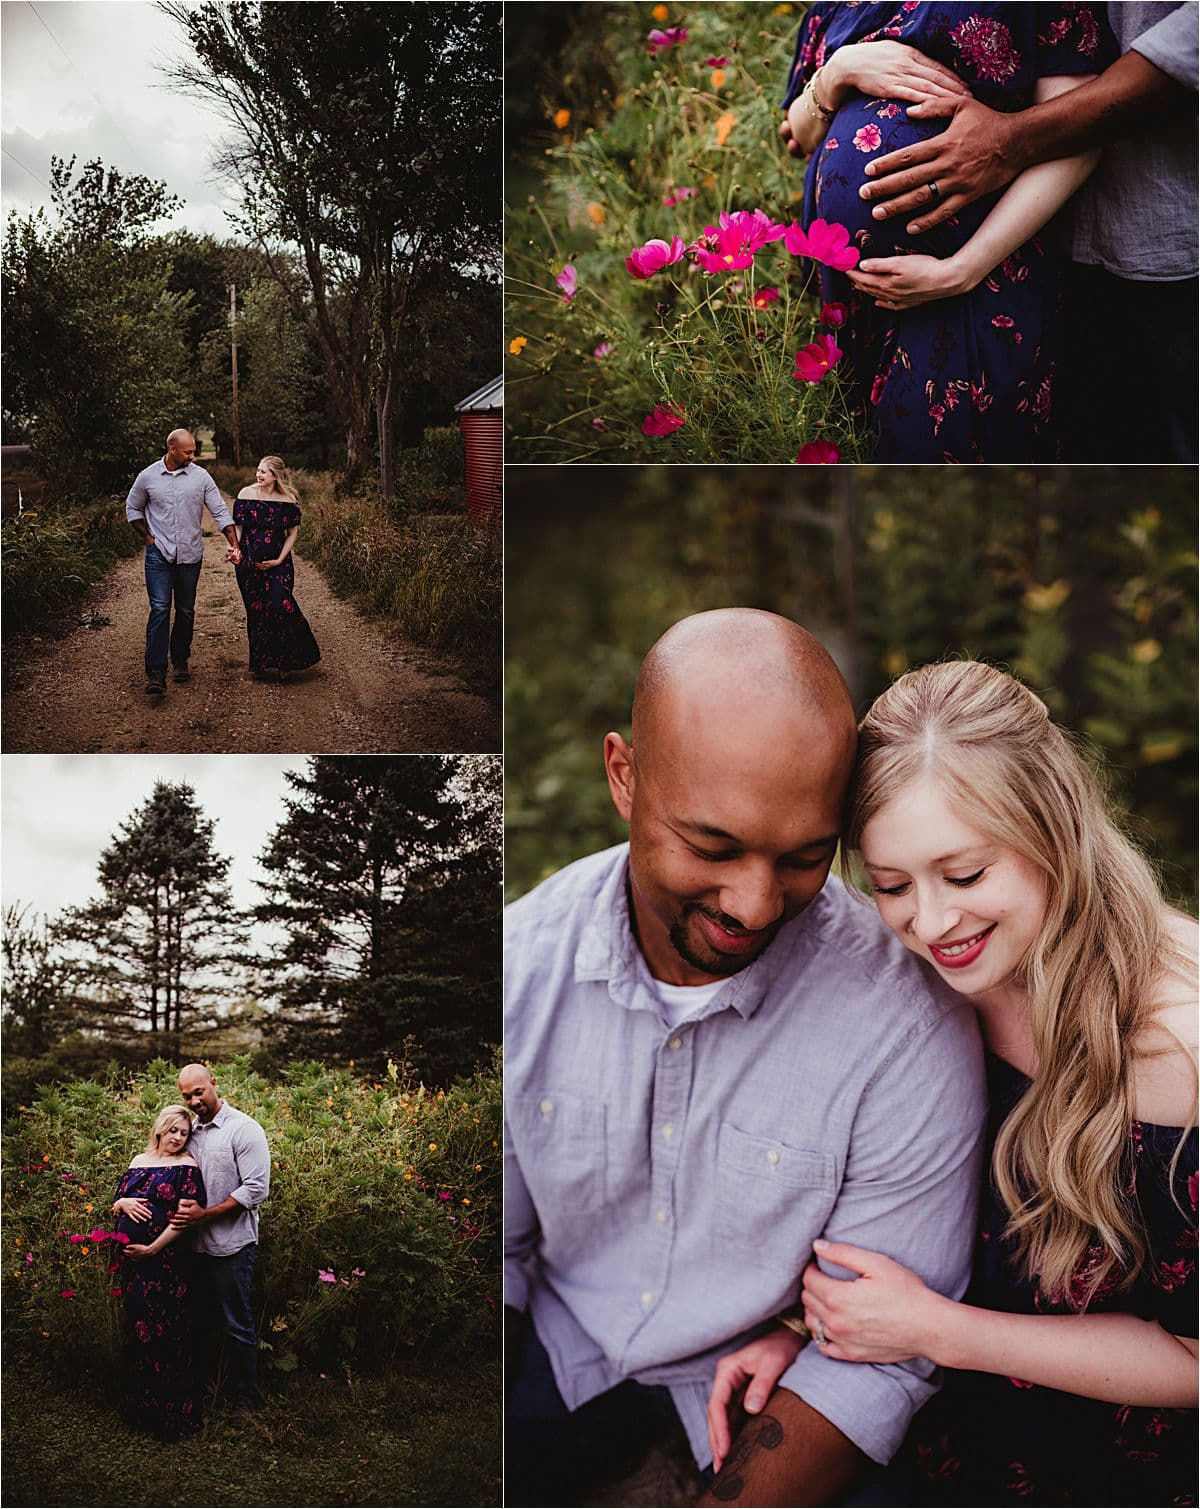 Collage Maternity Couple Snuggling